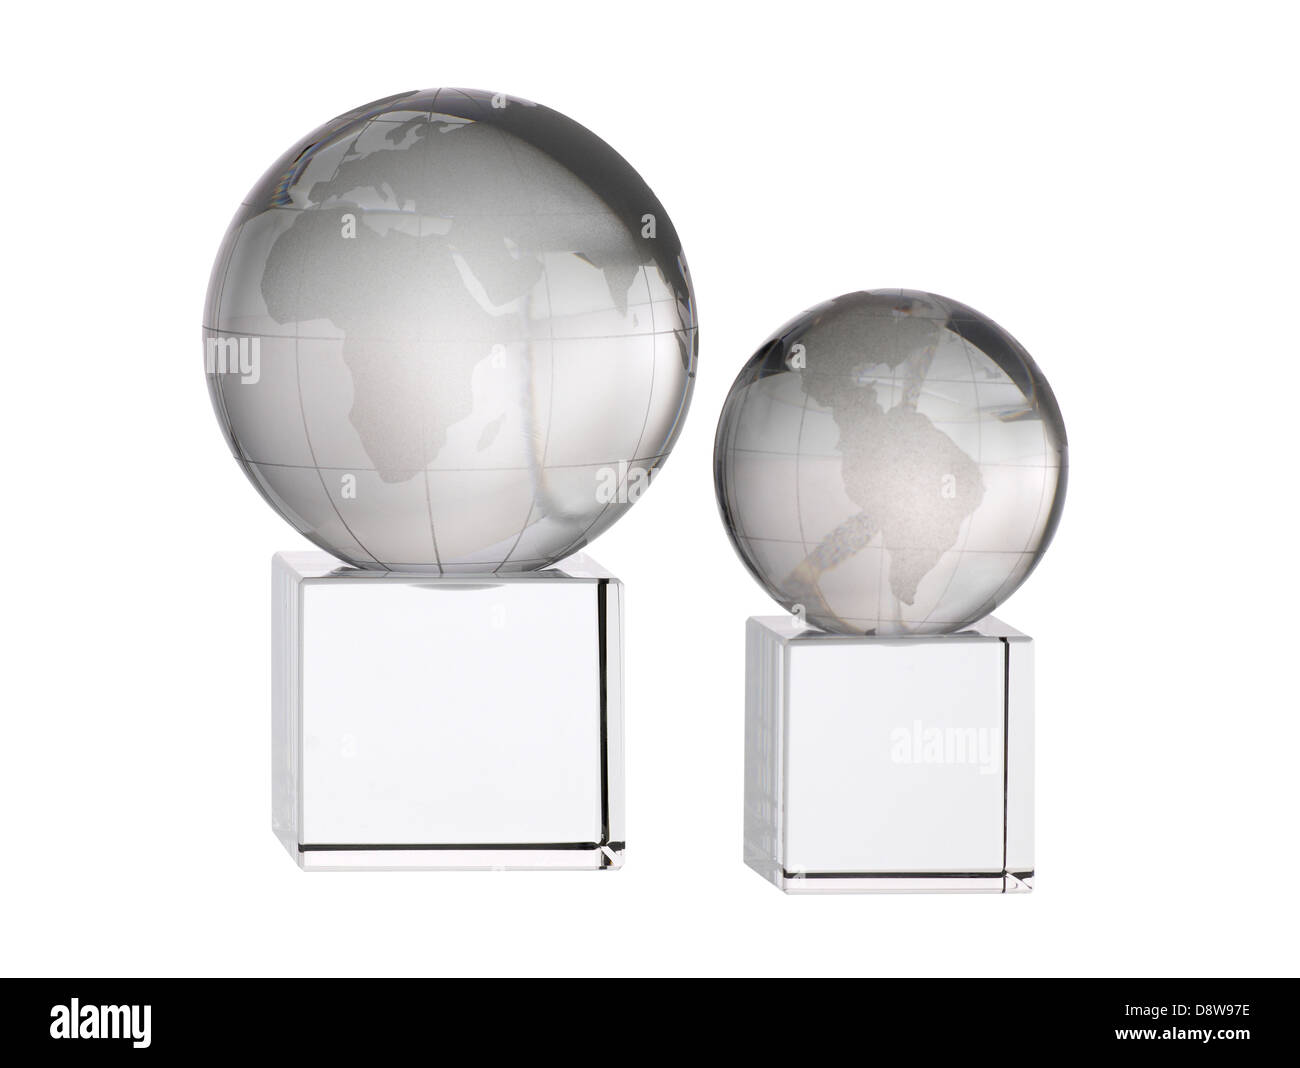 two glass globe awards trophies - Stock Image